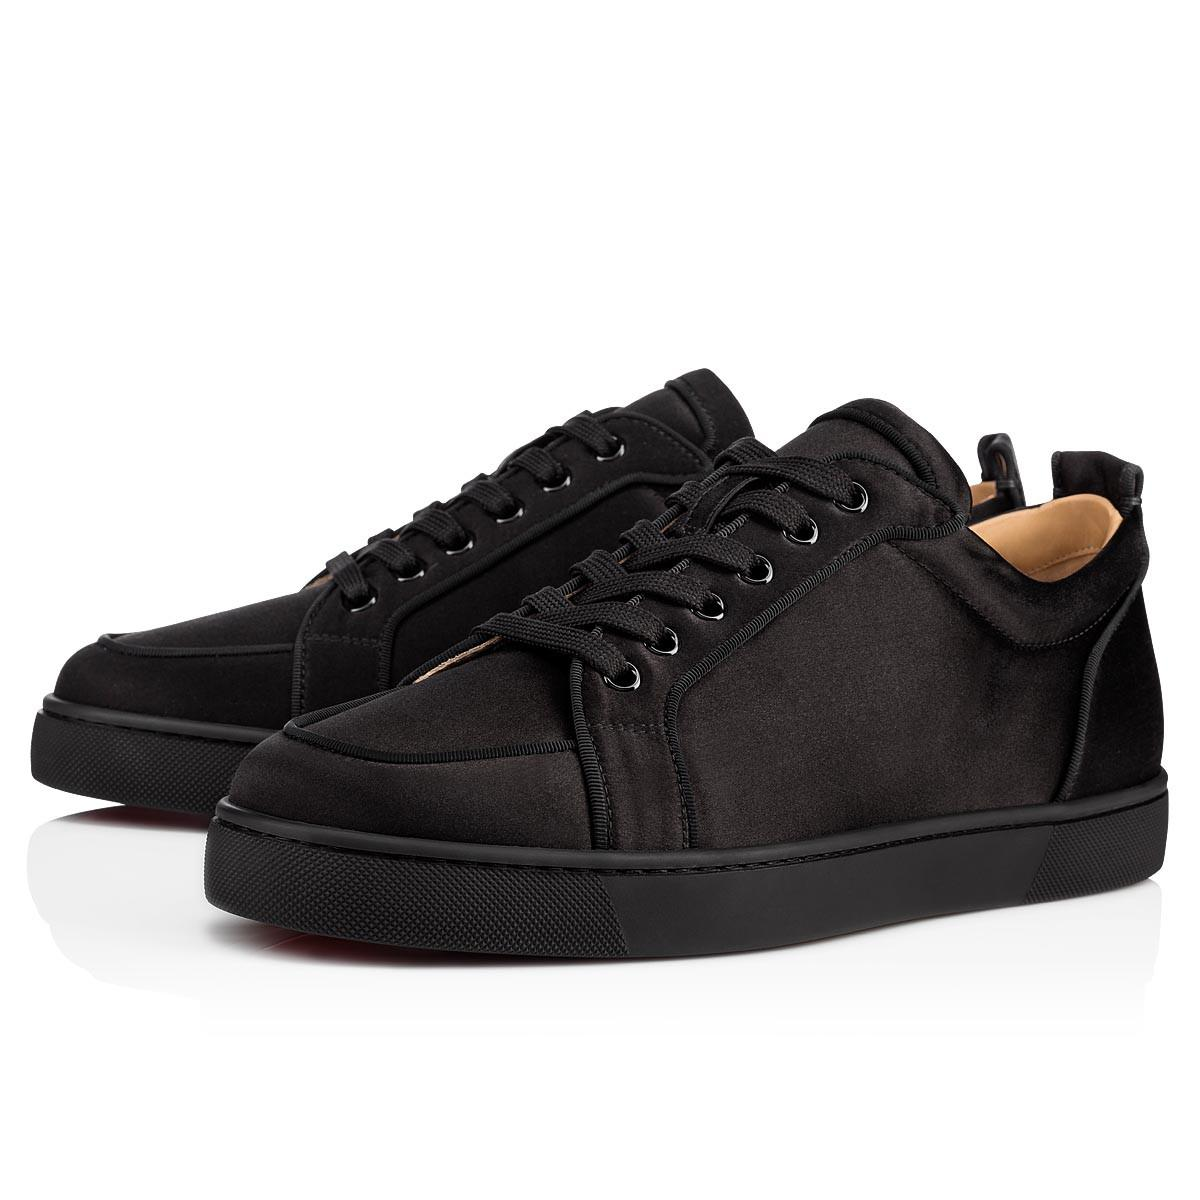 022bc55a65d Christian Louboutin Rantulow Orlato Men s Flat in Black for Men - Lyst